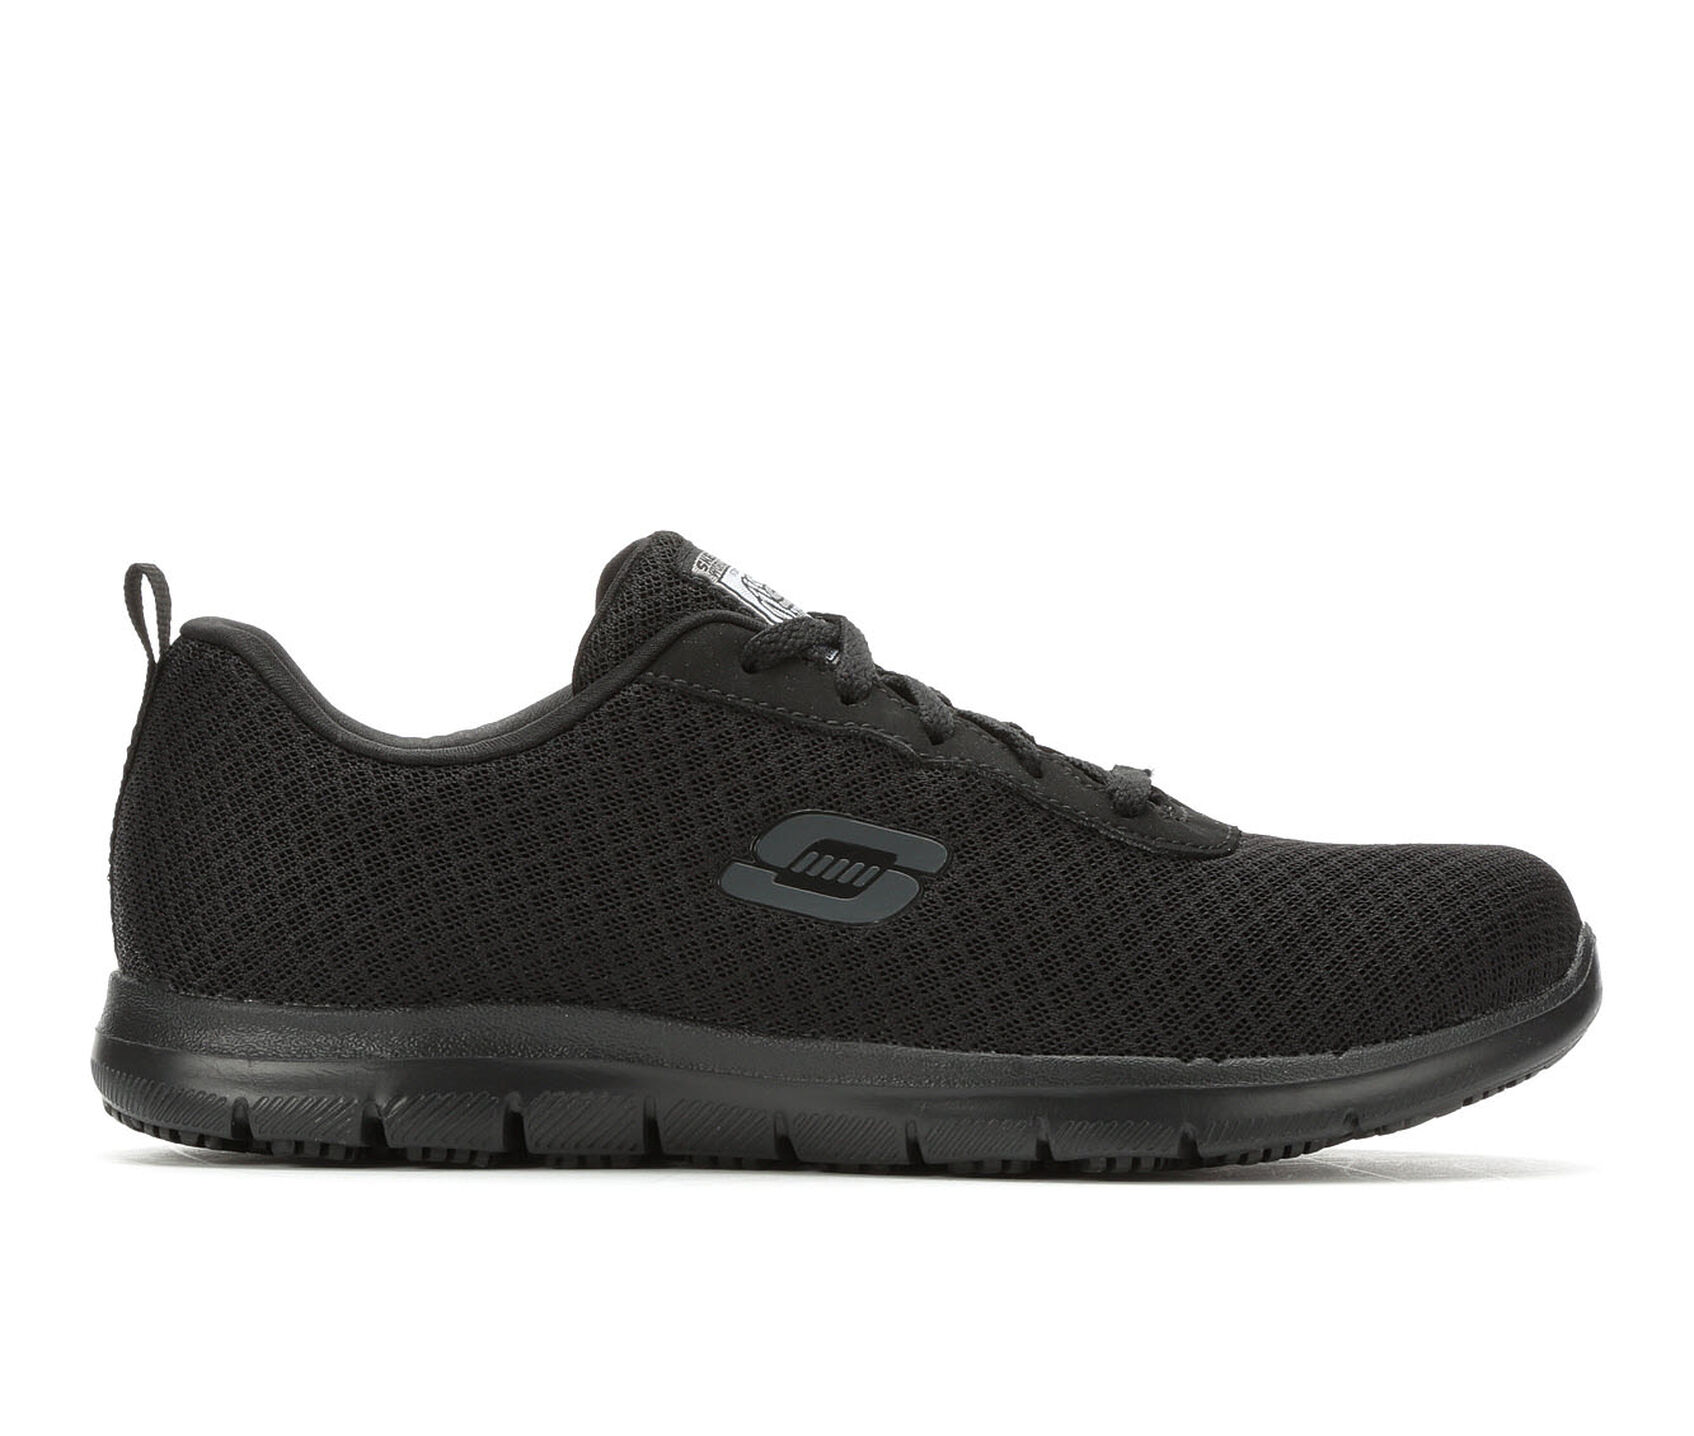 skechers shoes nearby